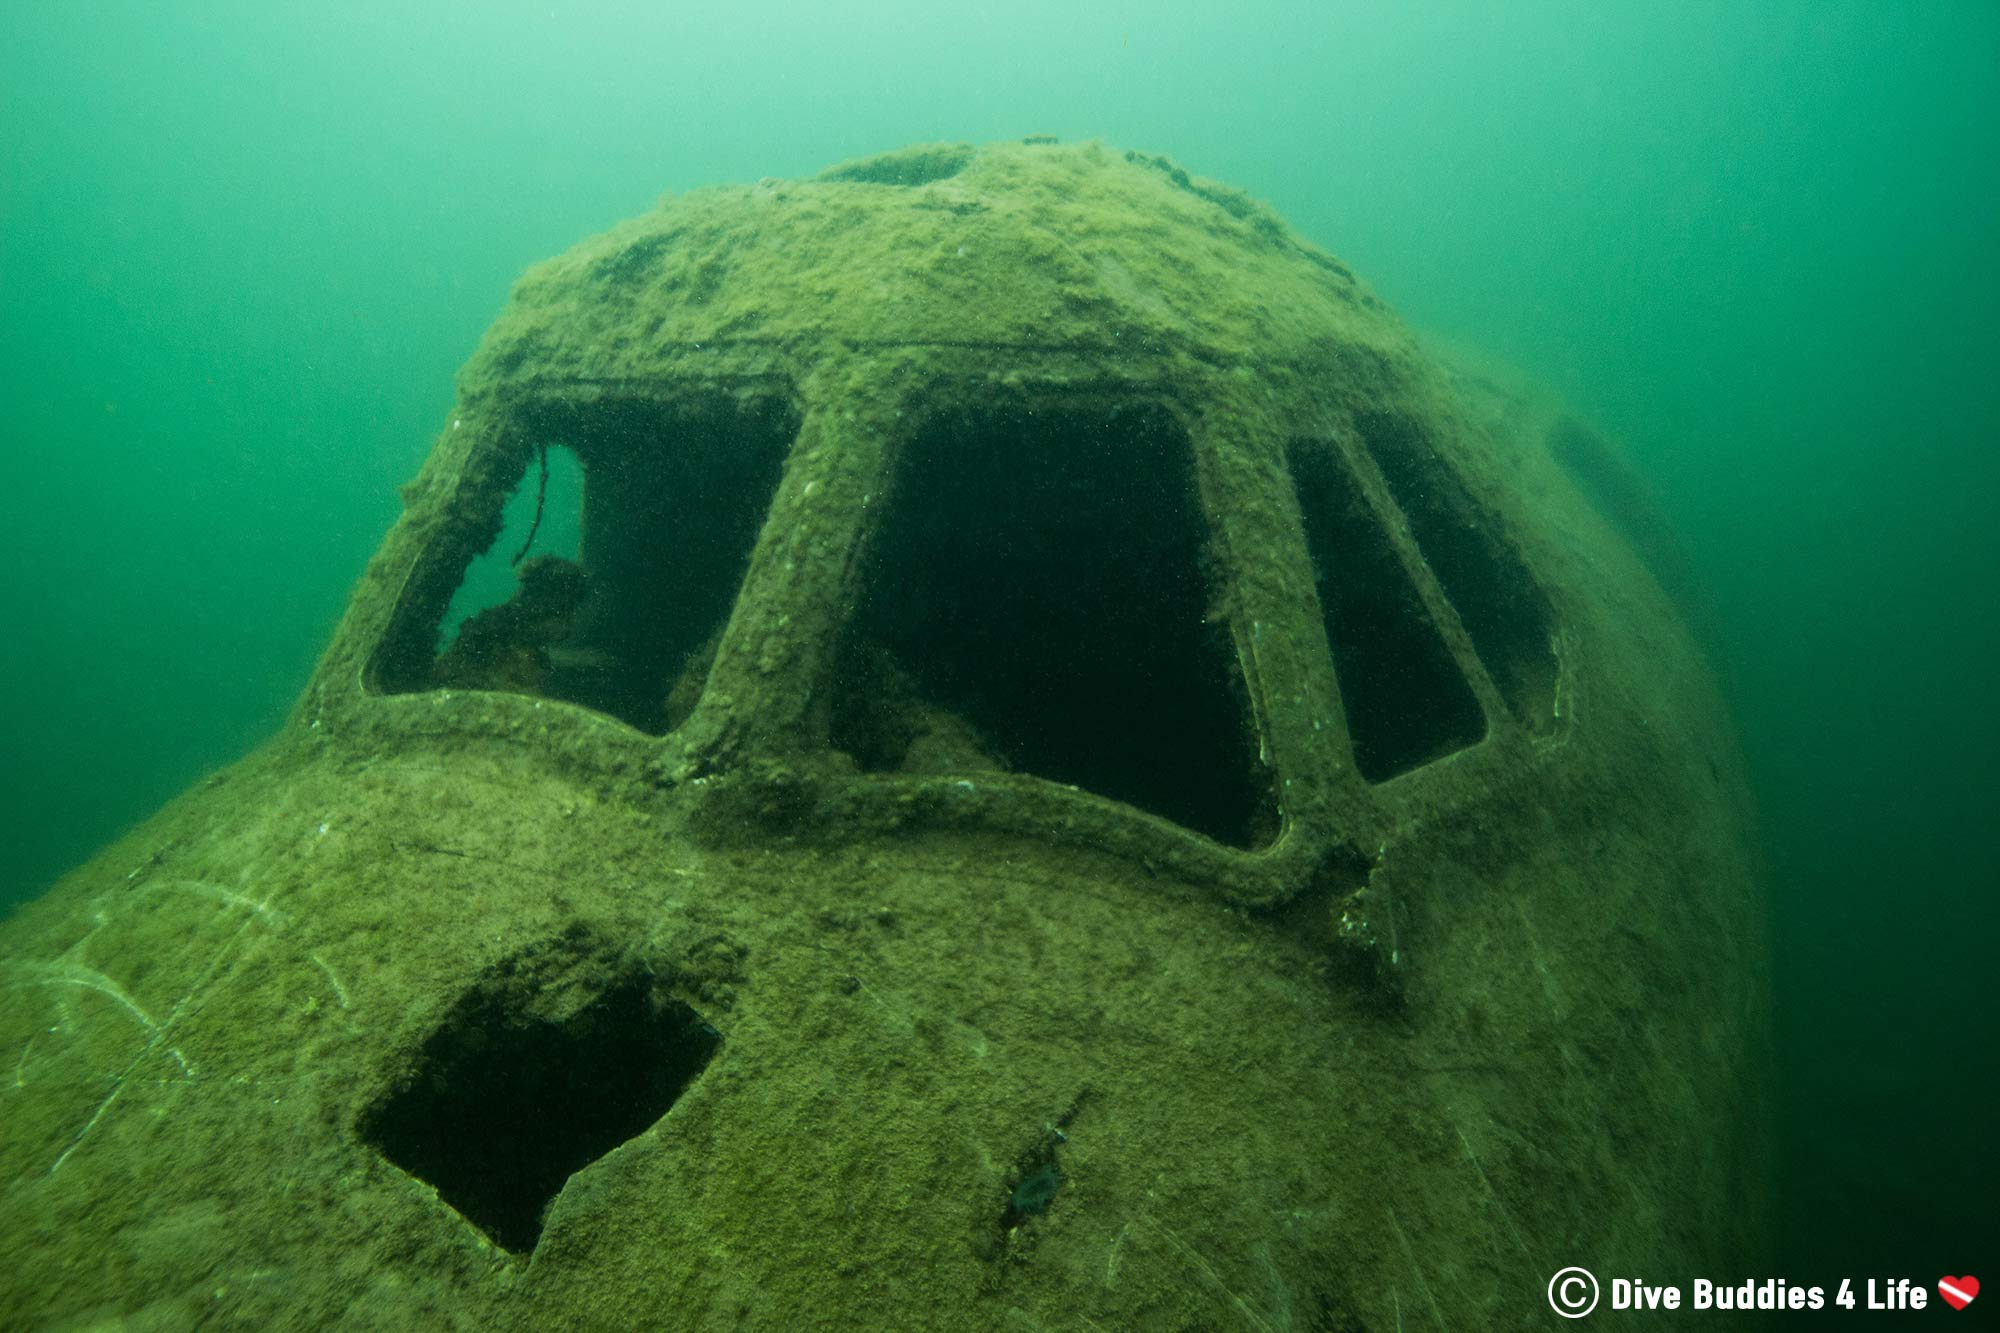 Top Hub Of A Sunken Aeroplane In The Stoney Cove Inland Quarry, England, Europe Scuba Diving